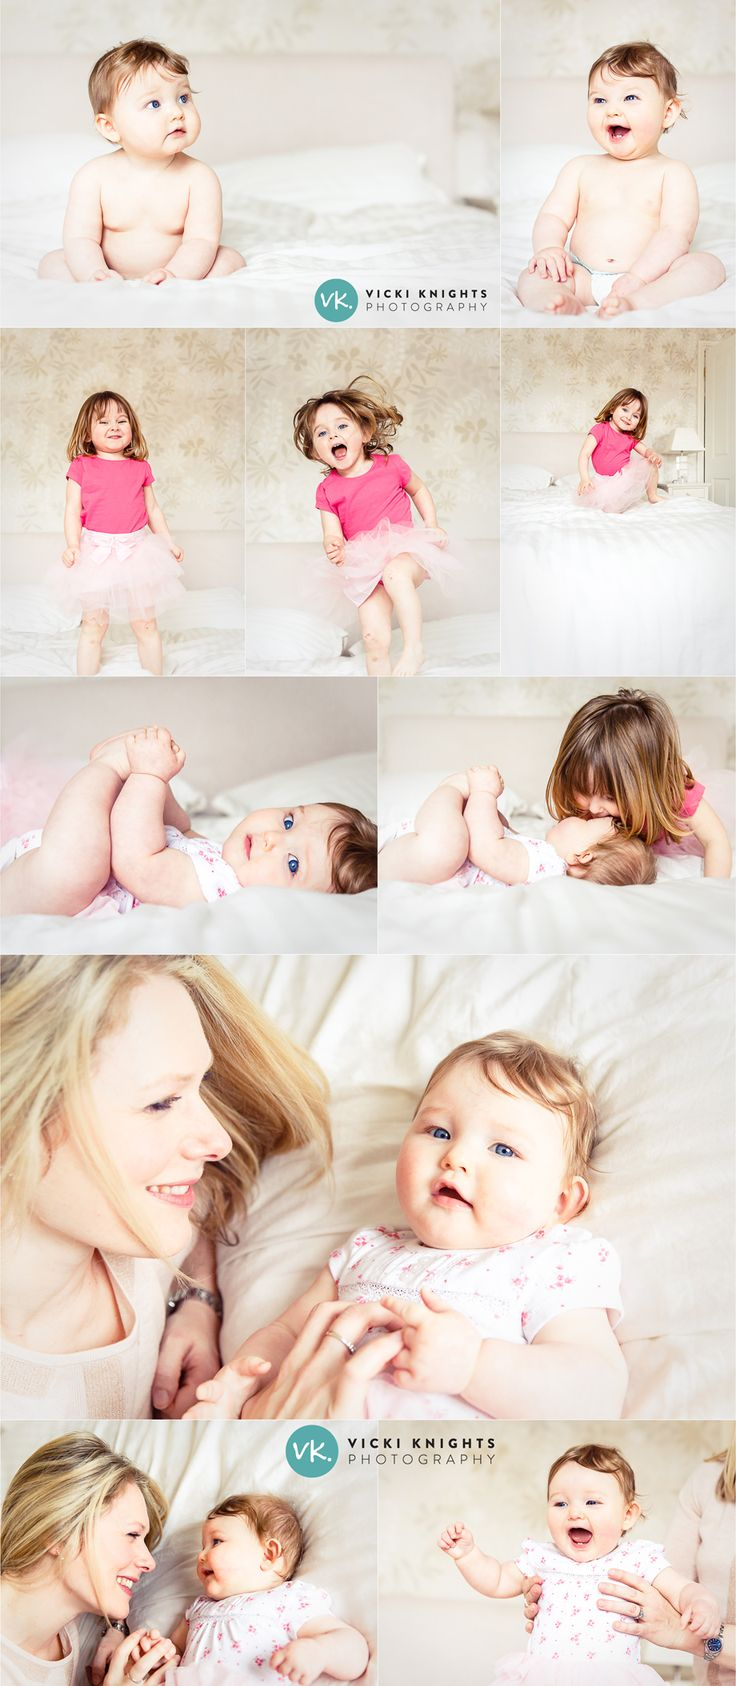 The 74 best Natural newborn & baby photography images on Pinterest ...